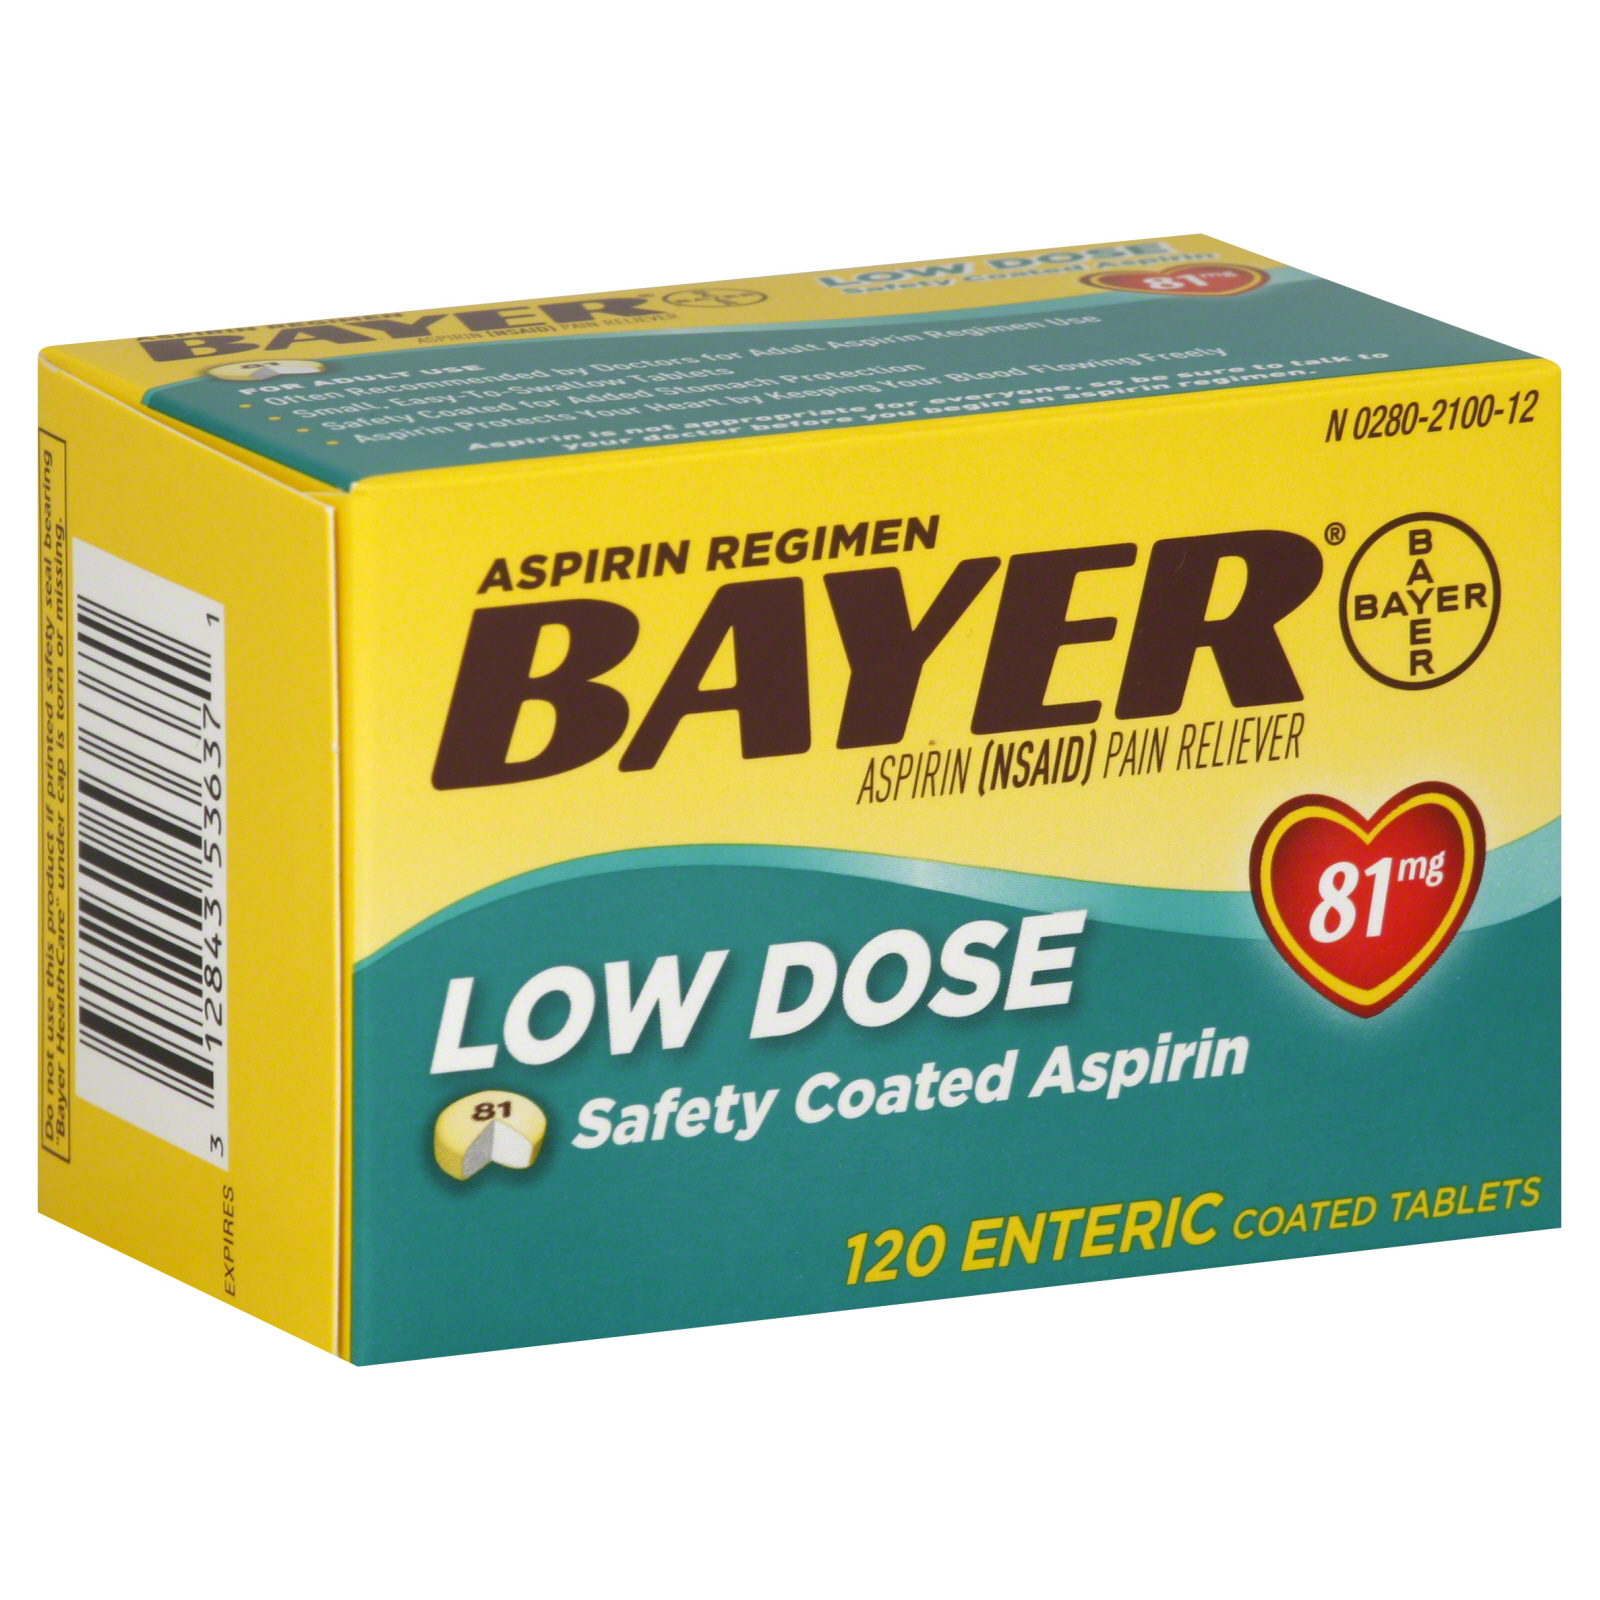 Bayer Aspirin Low Dose 81 mg Enteric Coated Tablets ...